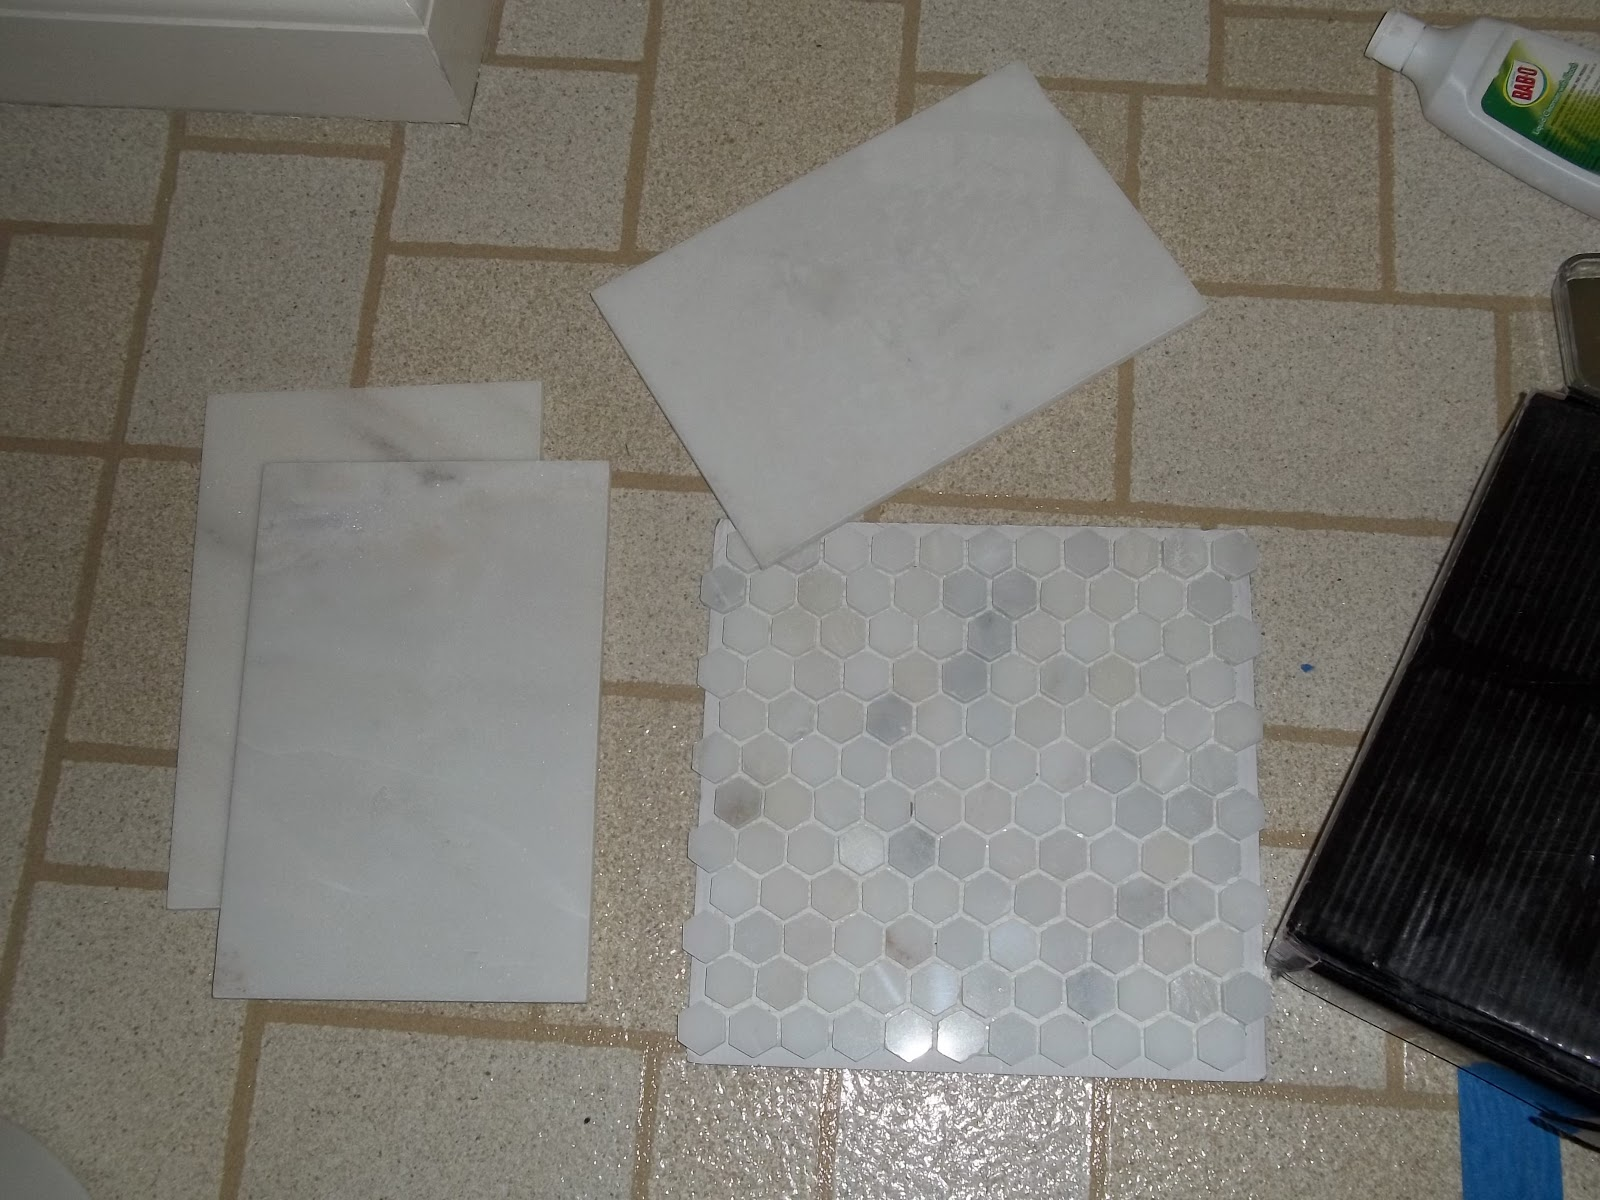 Flooring Materials for Floors and Walls